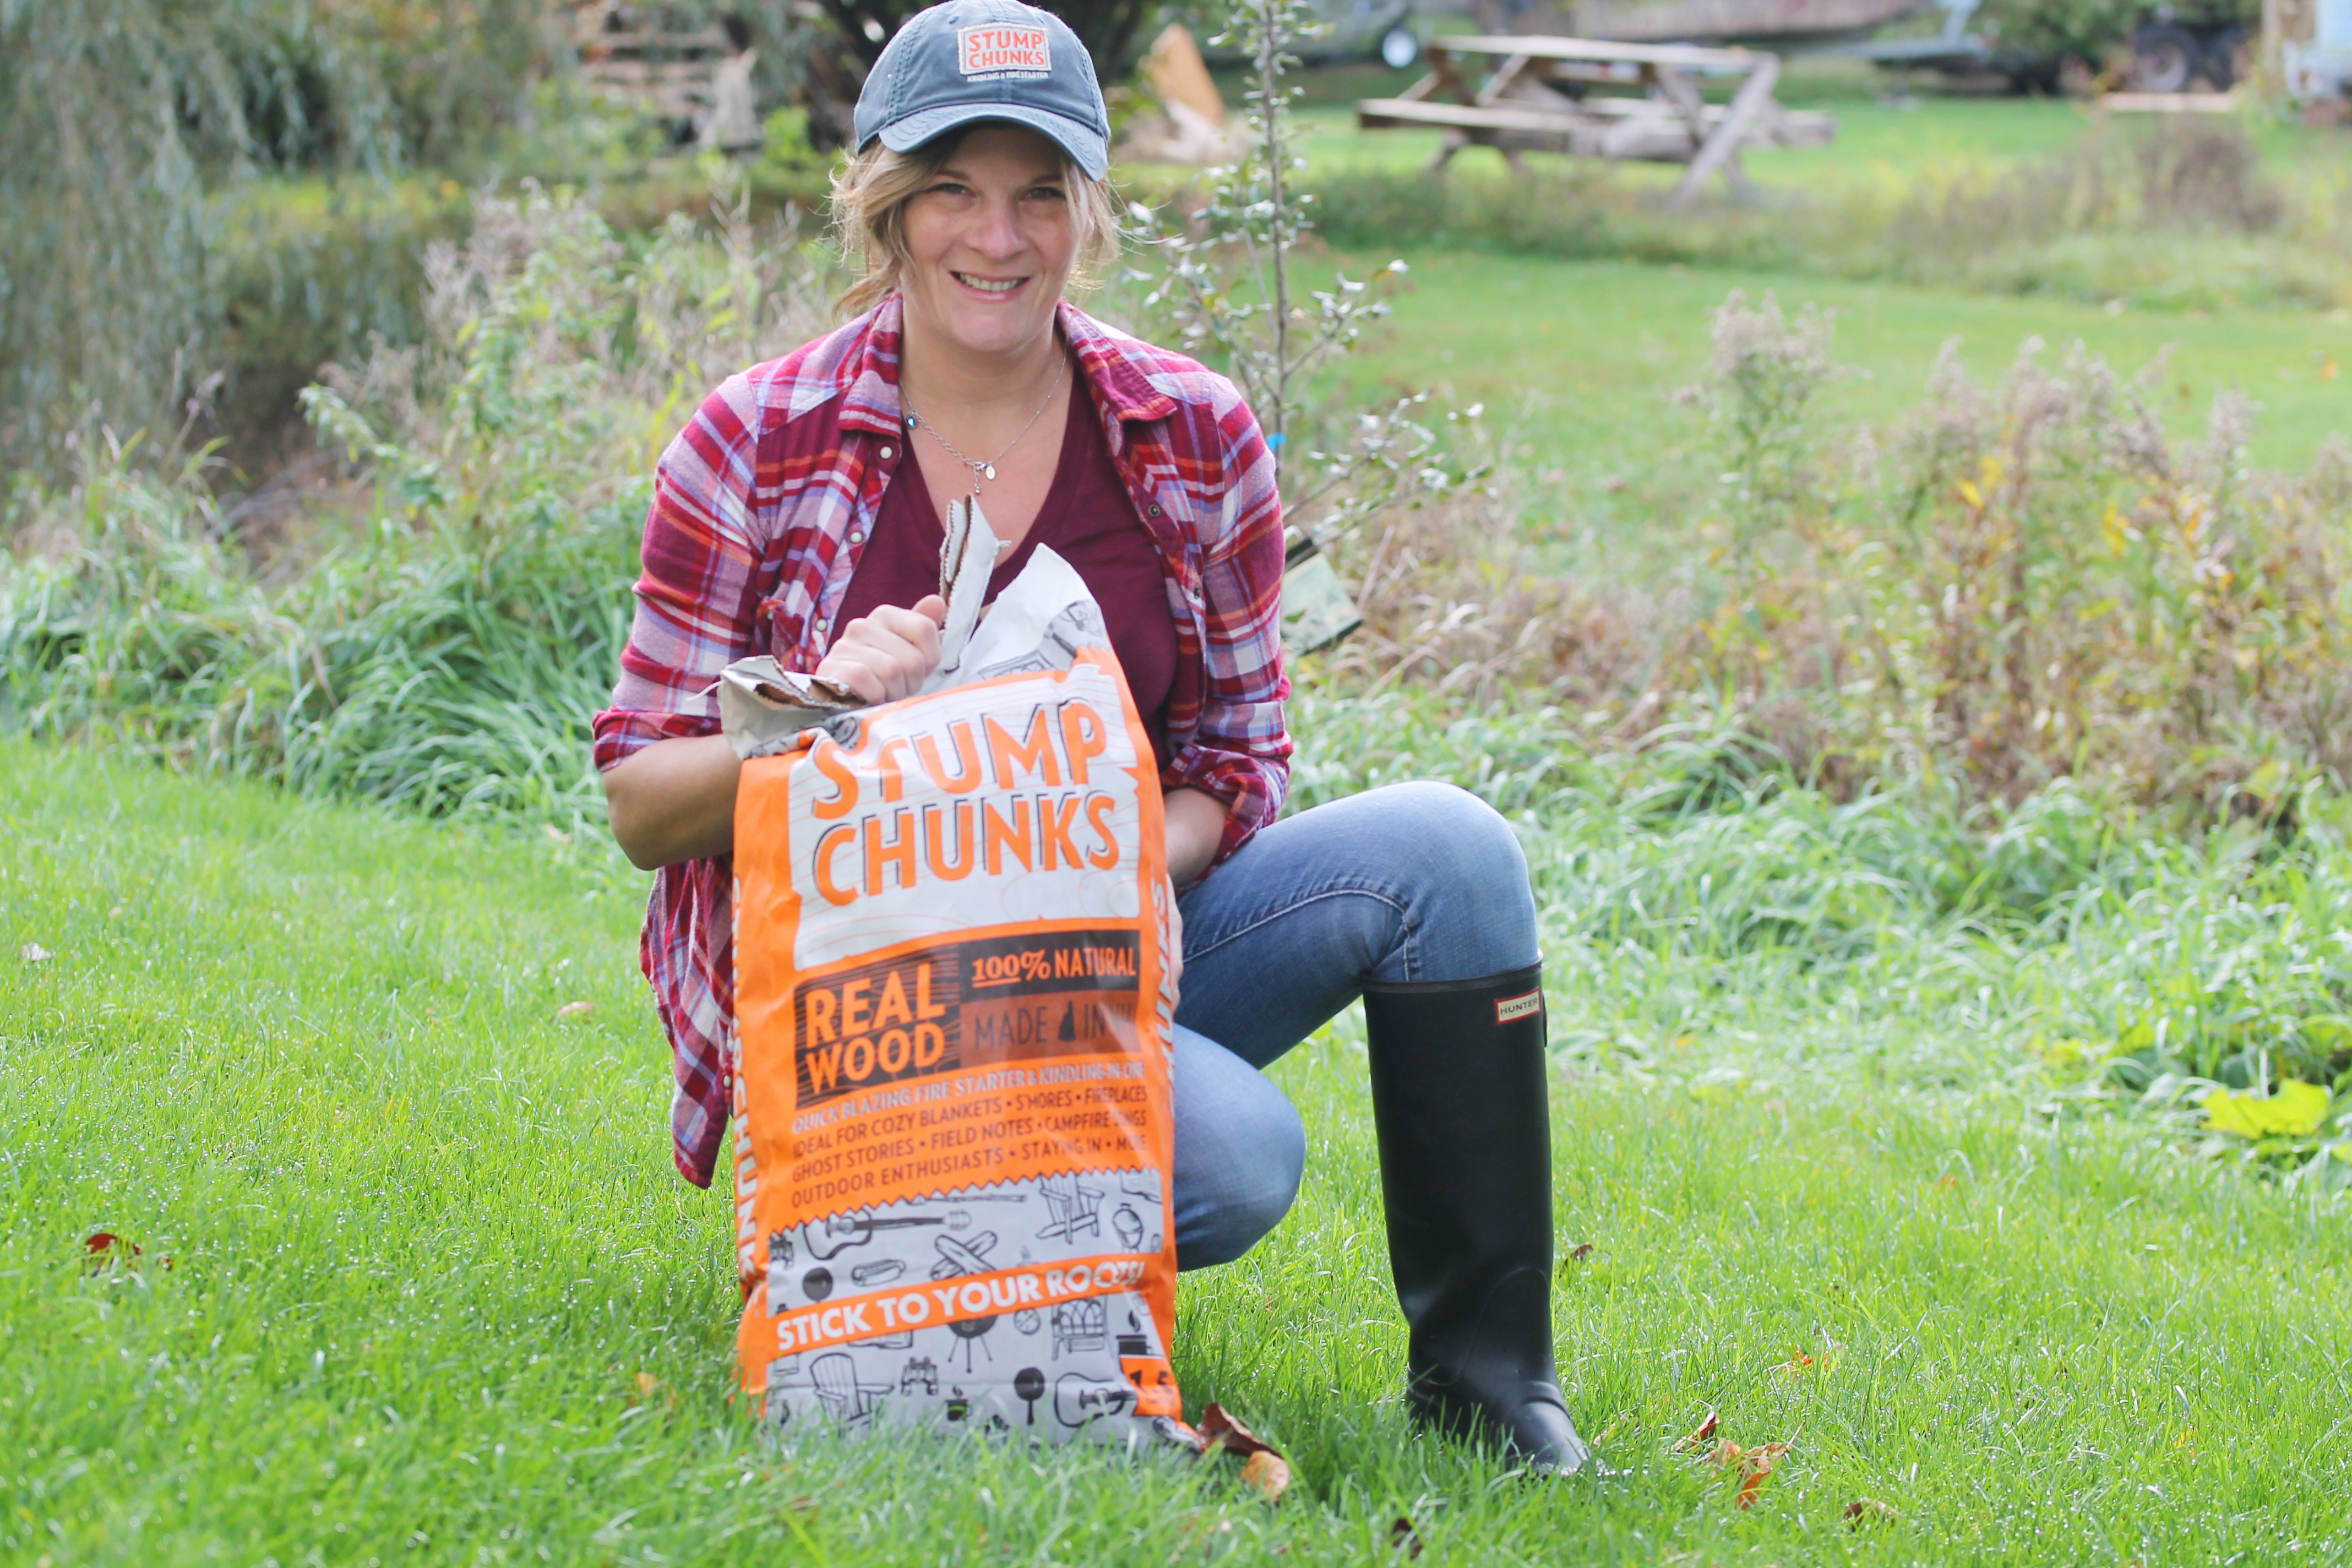 Stump Chunks – August Large Bag and Hat Contest Winner